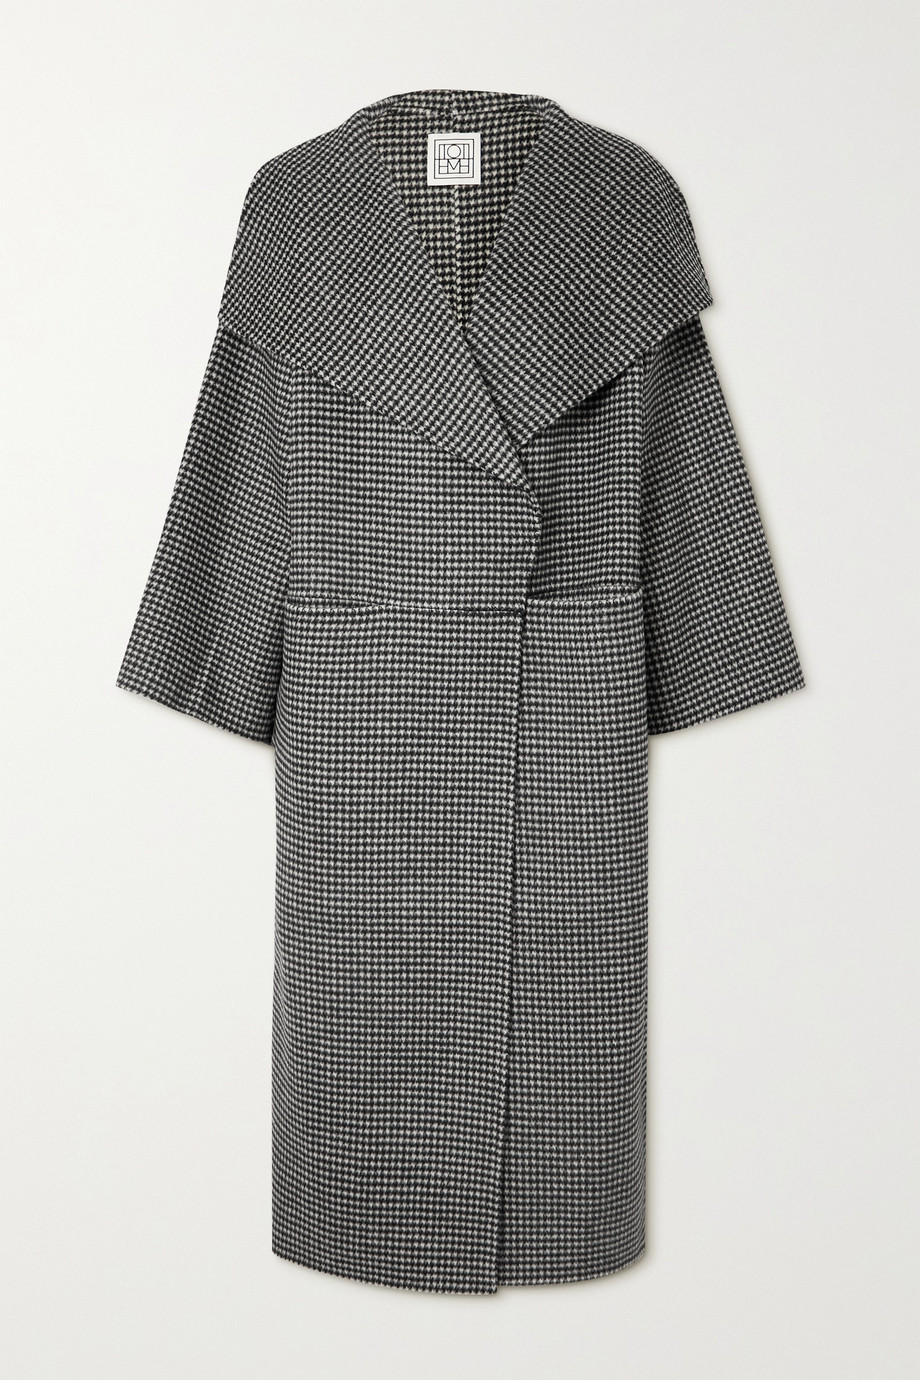 TOTÊME Signature houndstooth wool and cashmere-blend coat